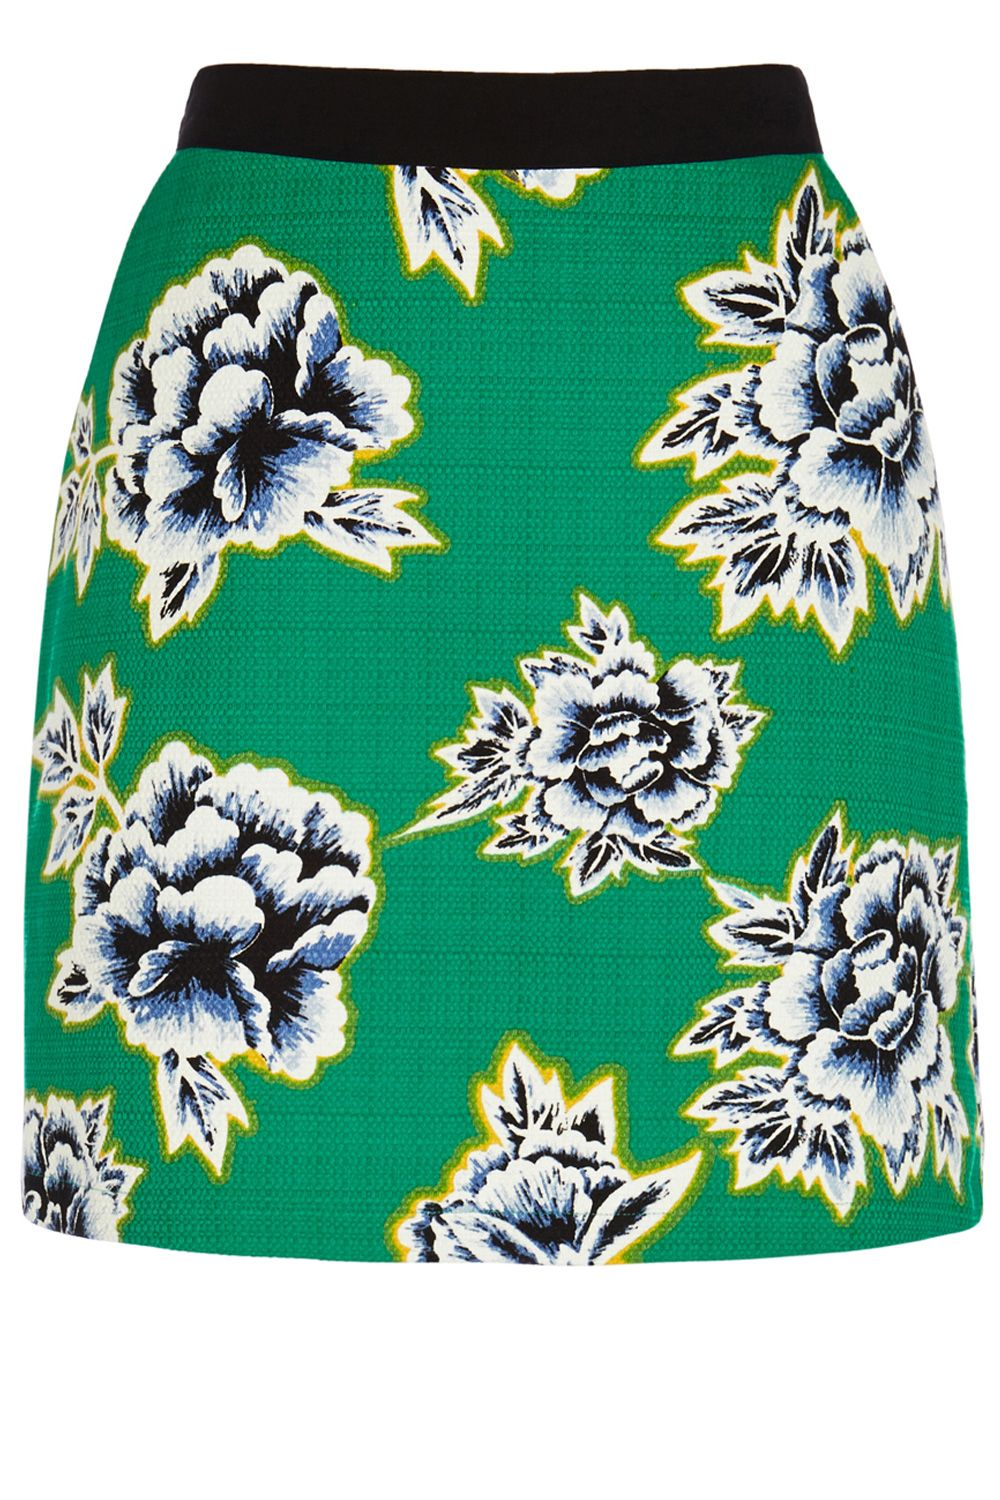 Stencil Floral Textured Cotton Skirt